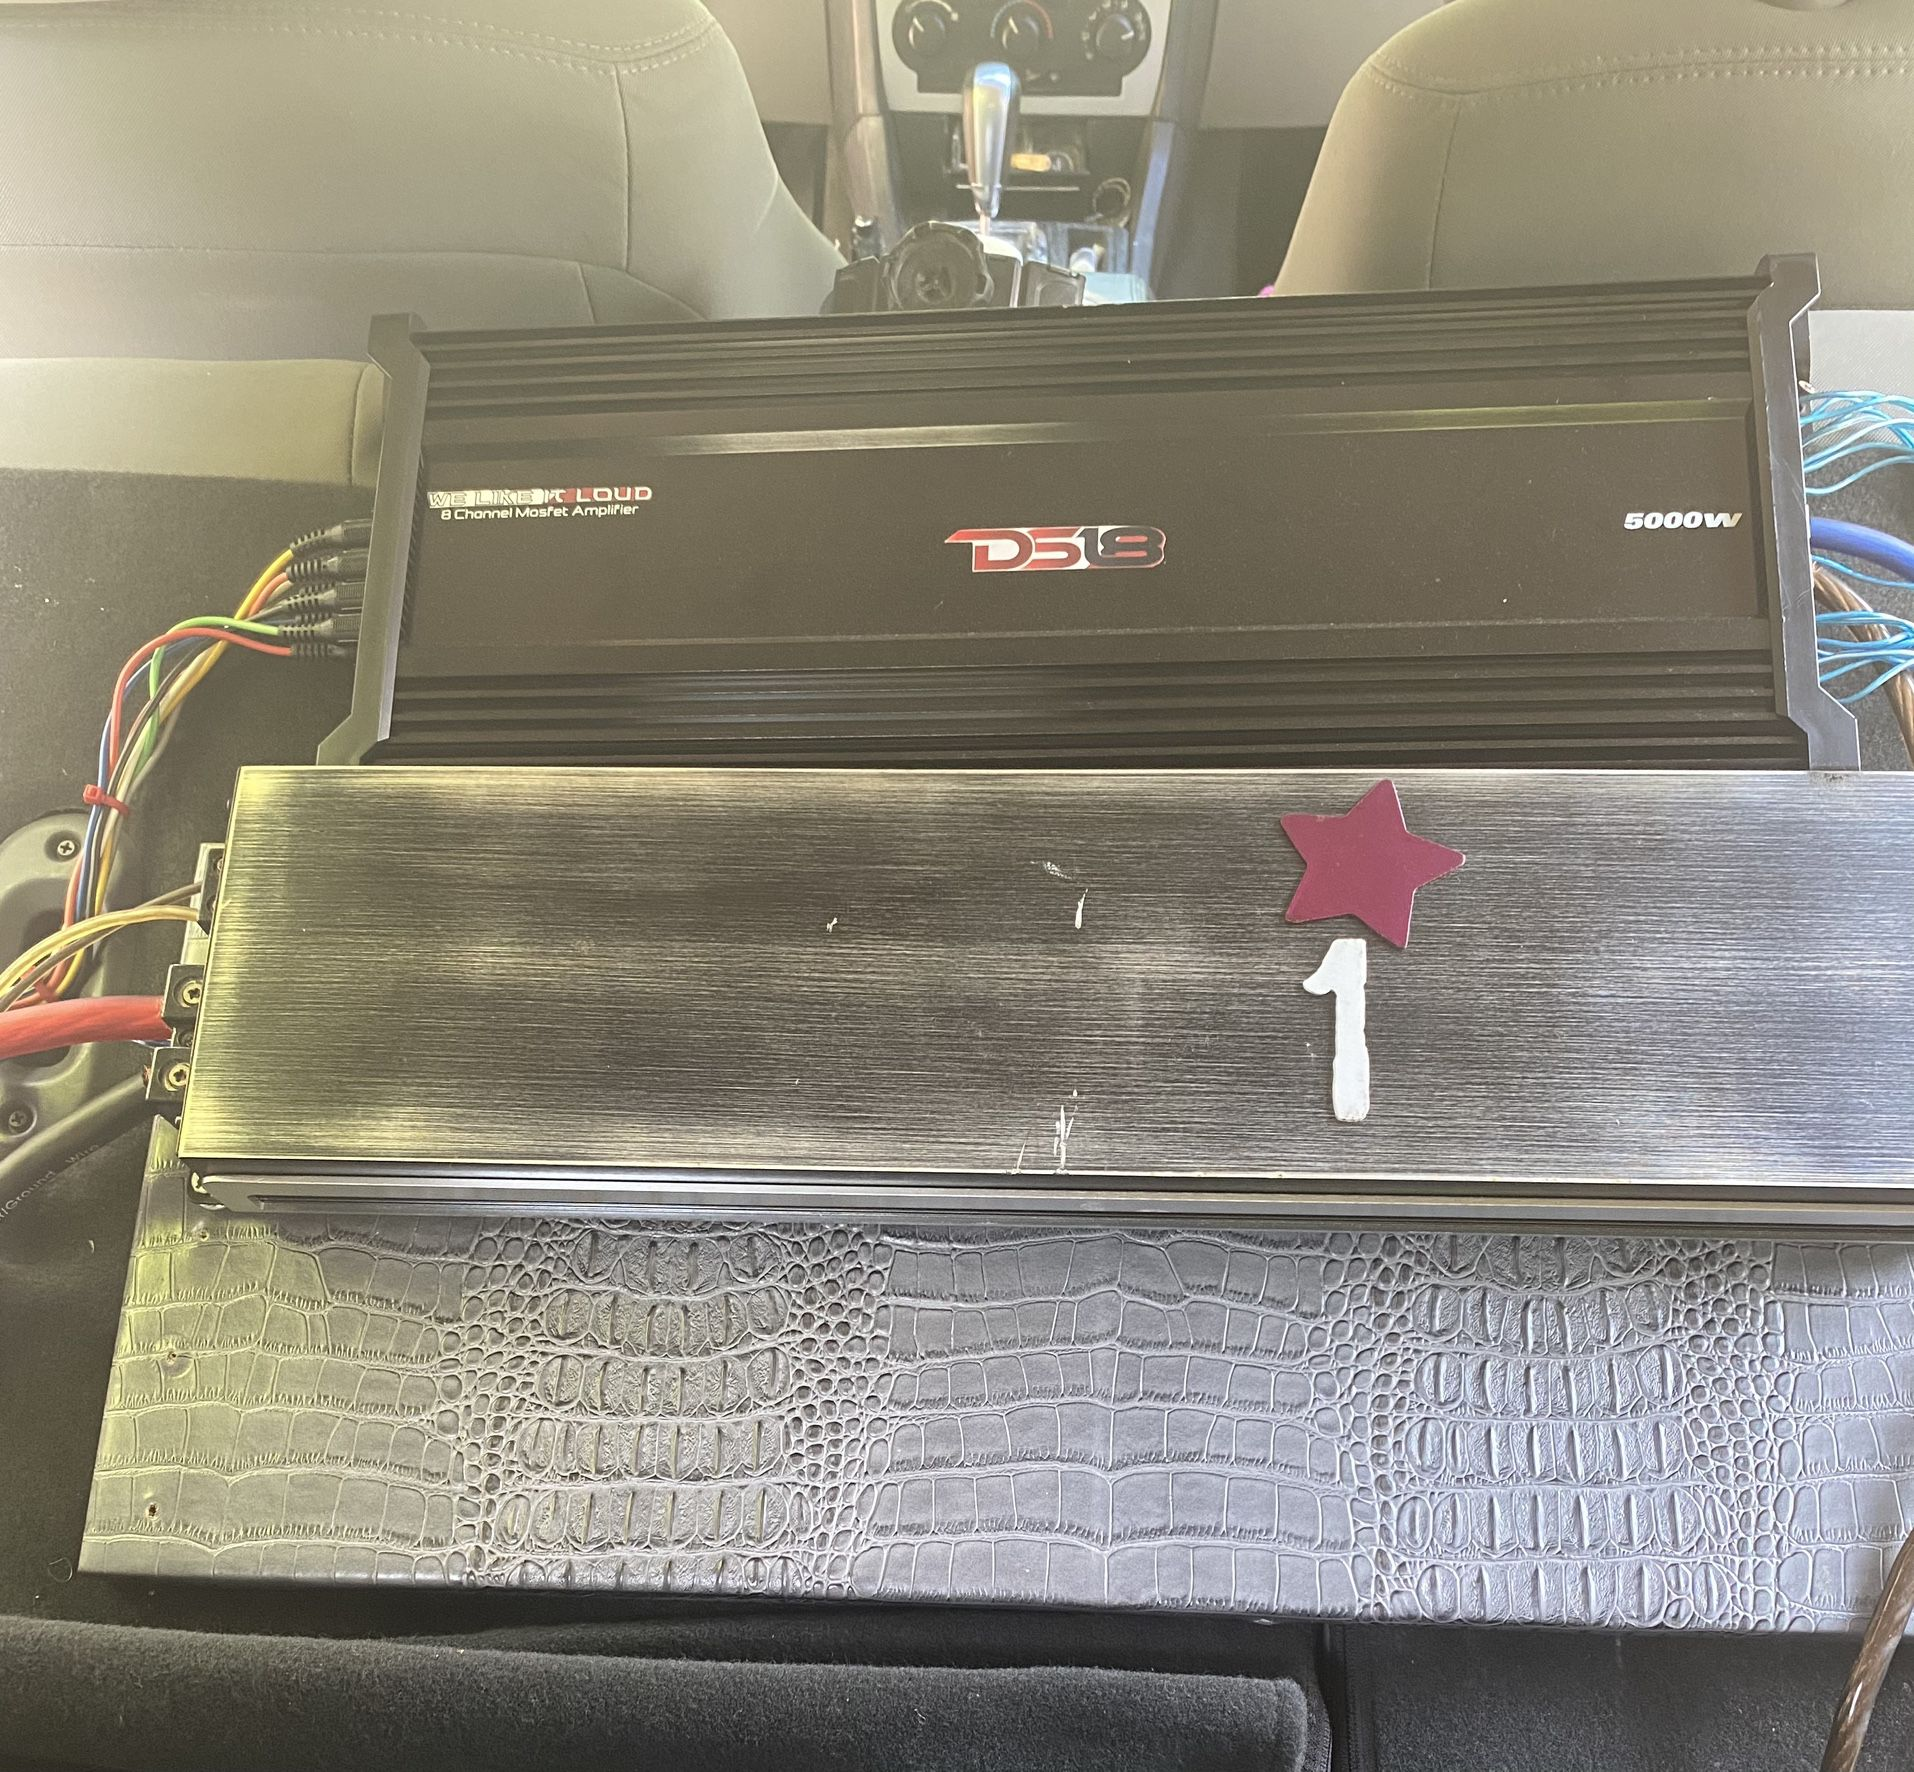 20 Inch PS1 Speaker Box And And 5000watt Amp System